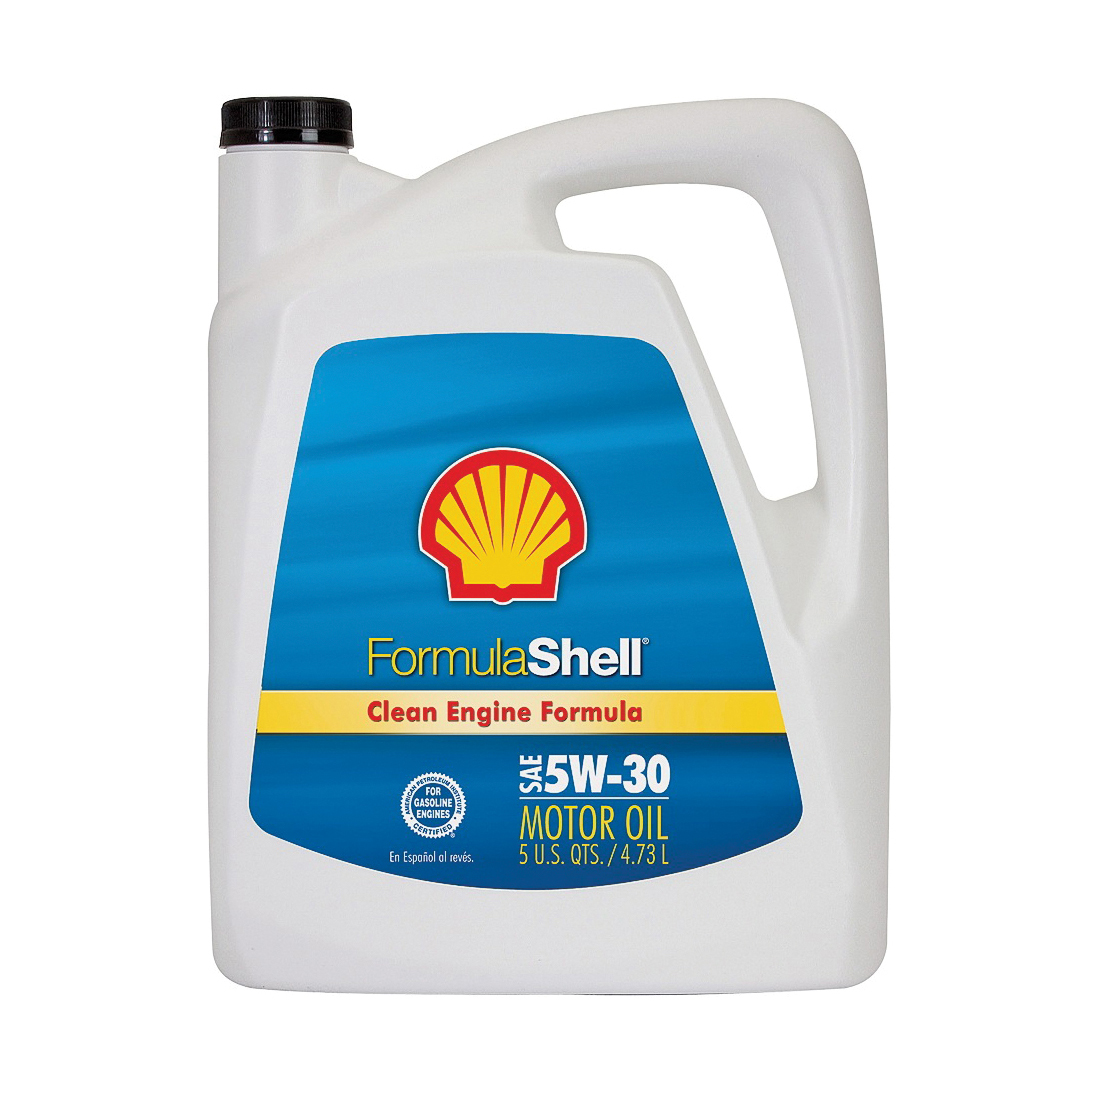 Picture of Formula Shell Clean Engine 550045245 Motor Oil, 5W-30, 5 qt Package, Bottle